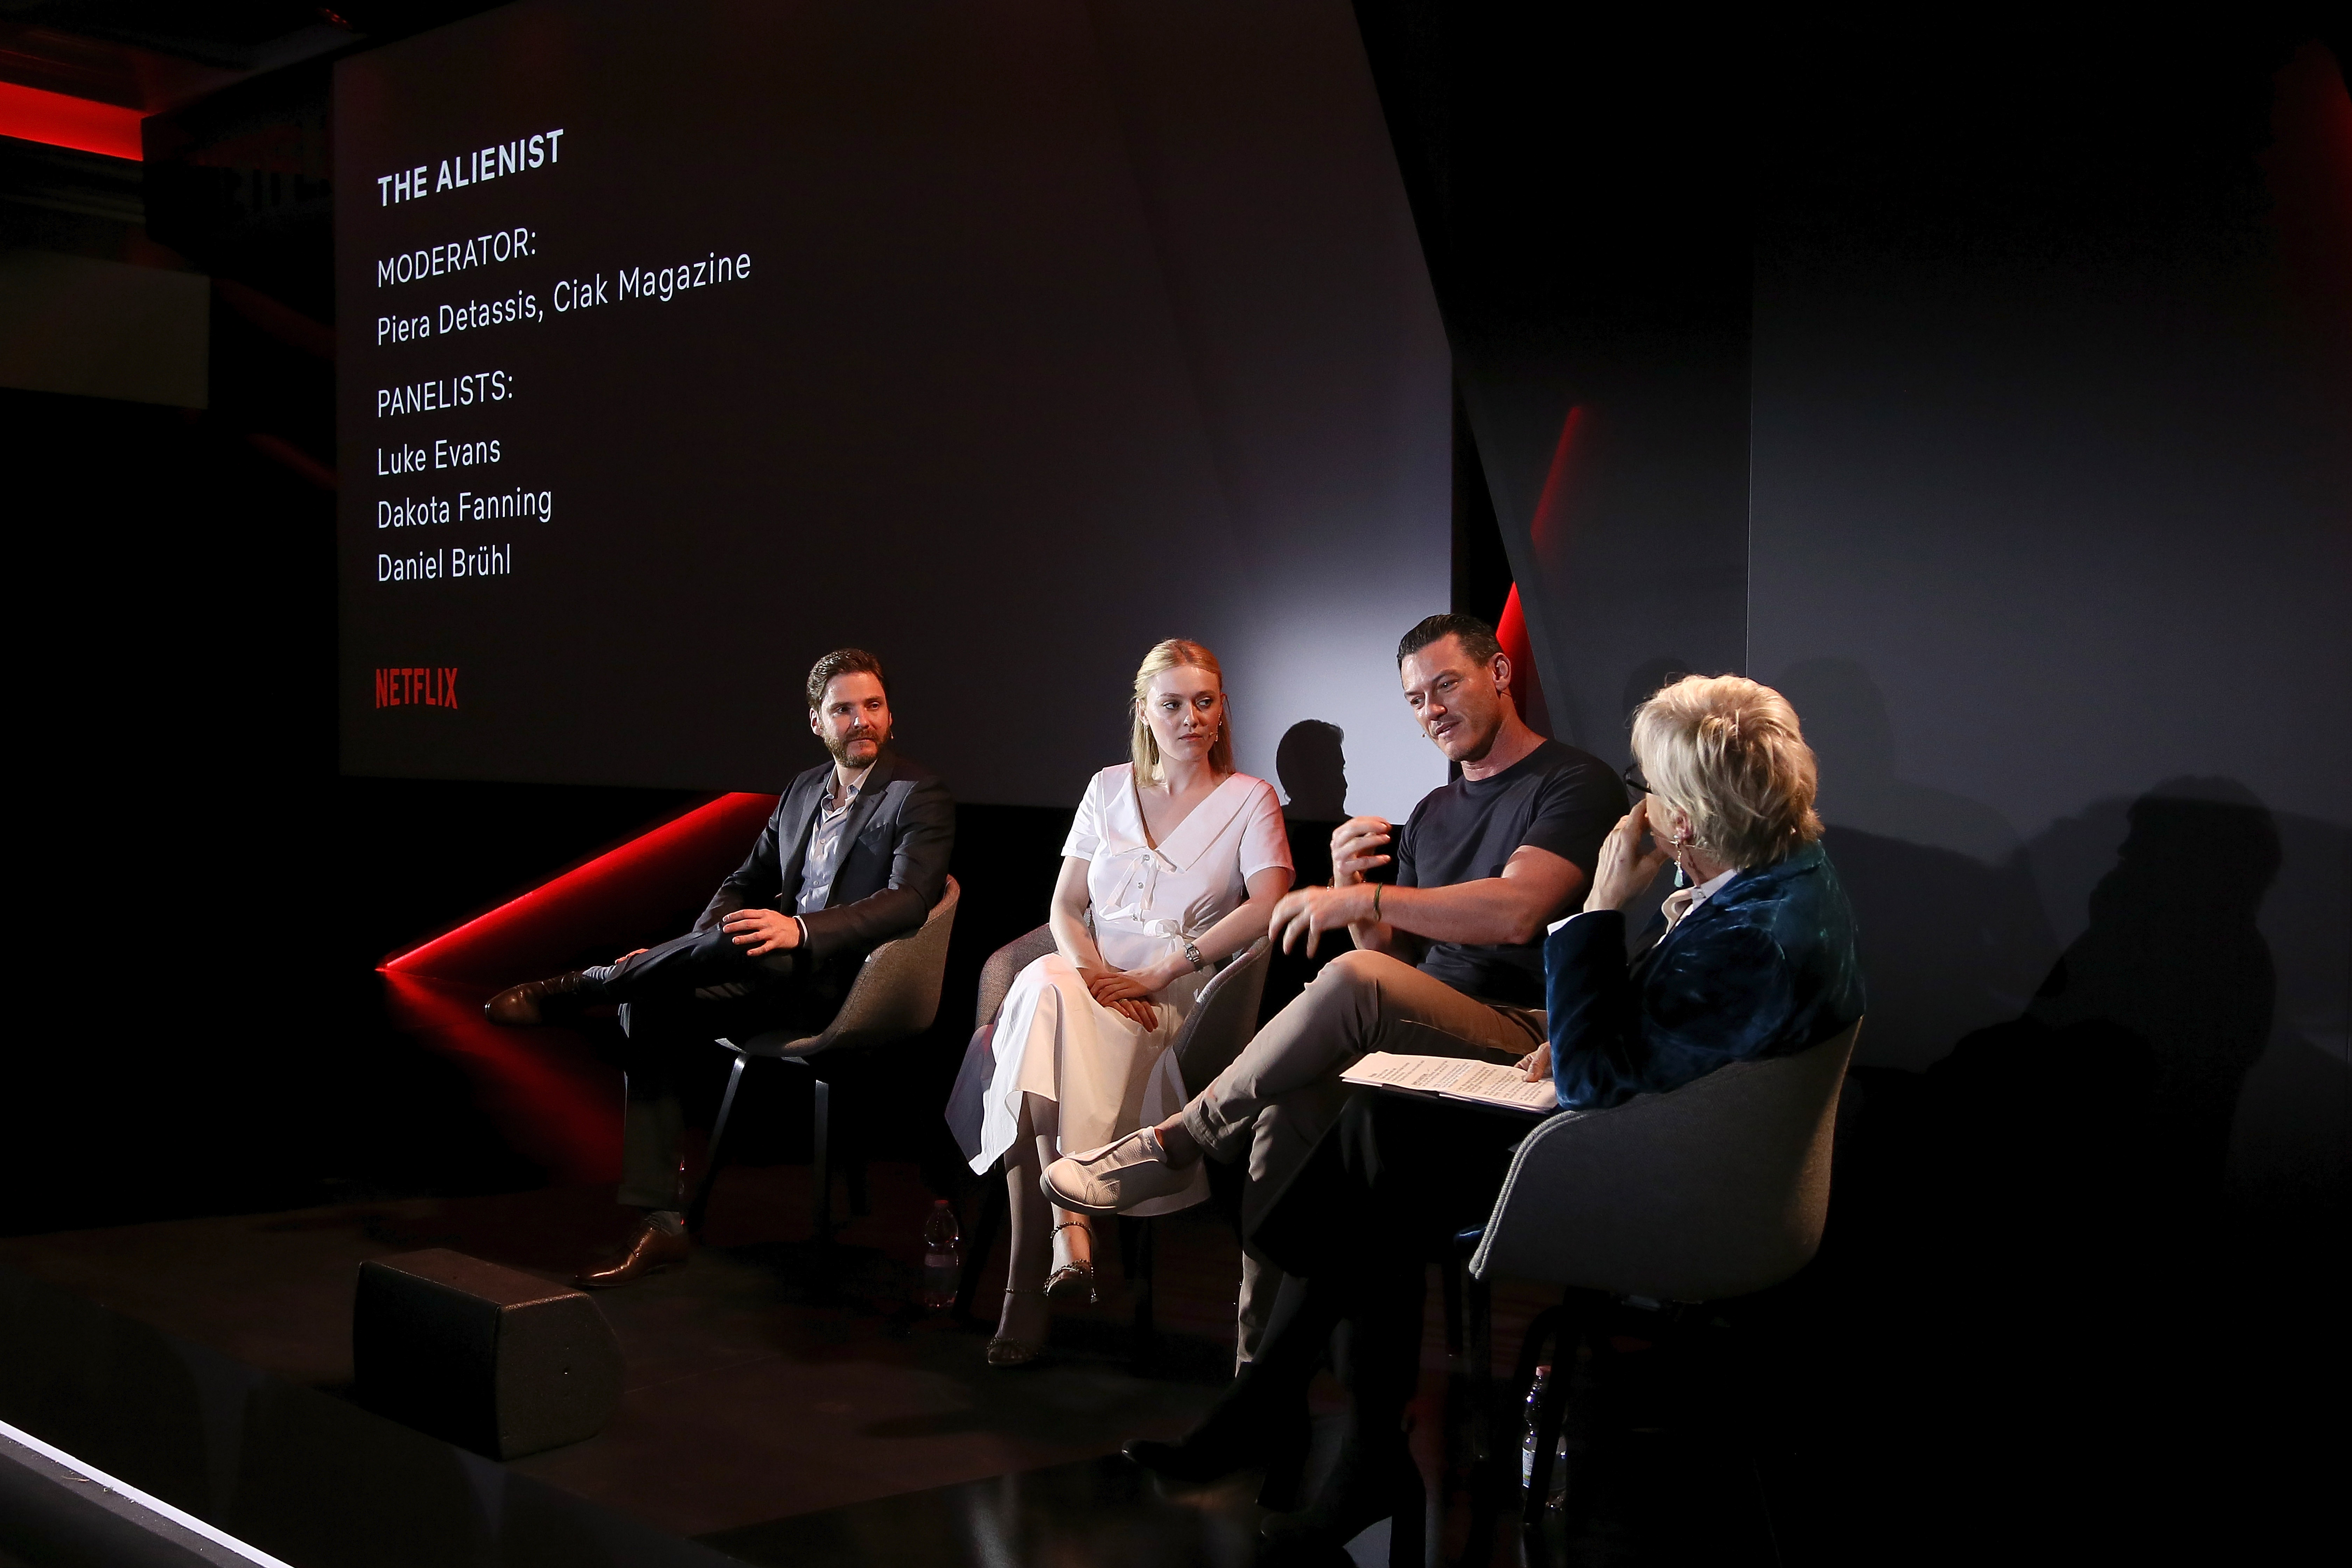 Netflix See What's Next Event In Rome